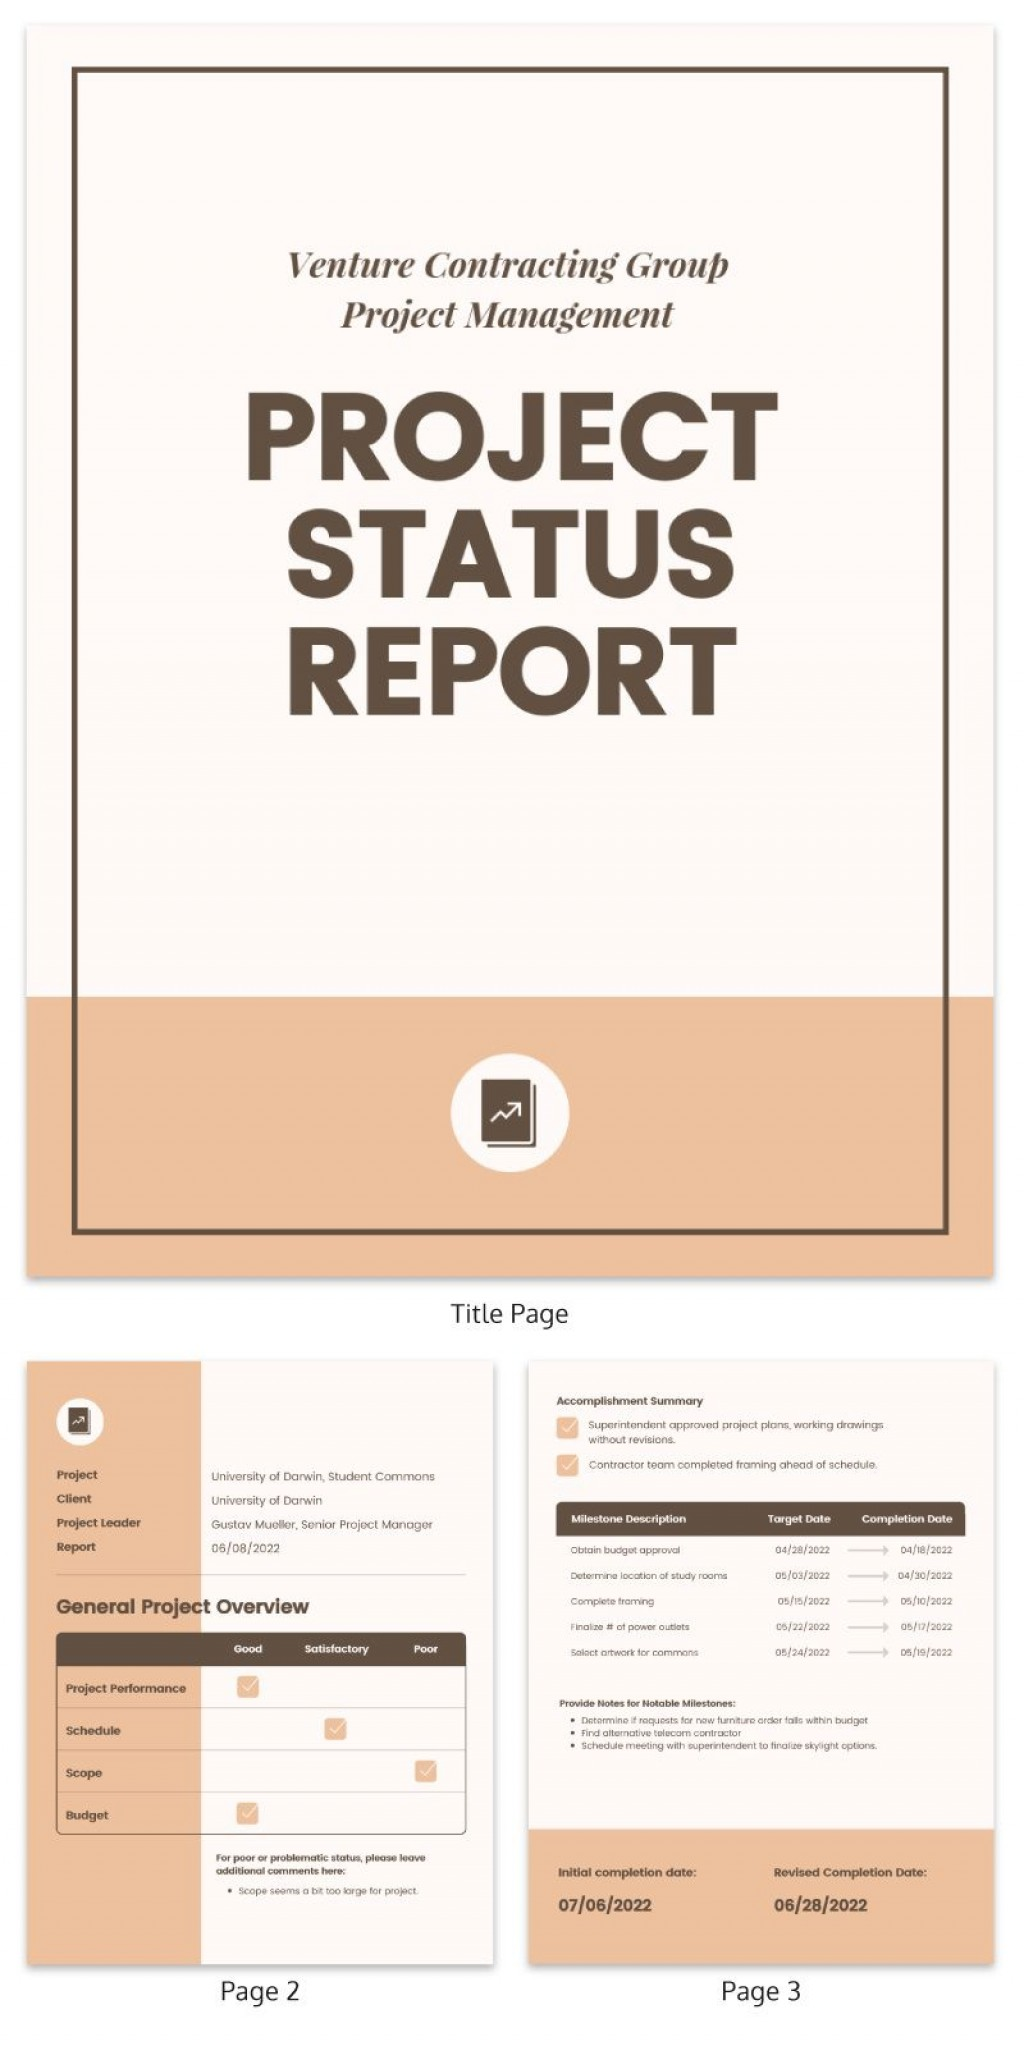 007 Top Project Management Report Template Free High Resolution  Weekly StatuLarge